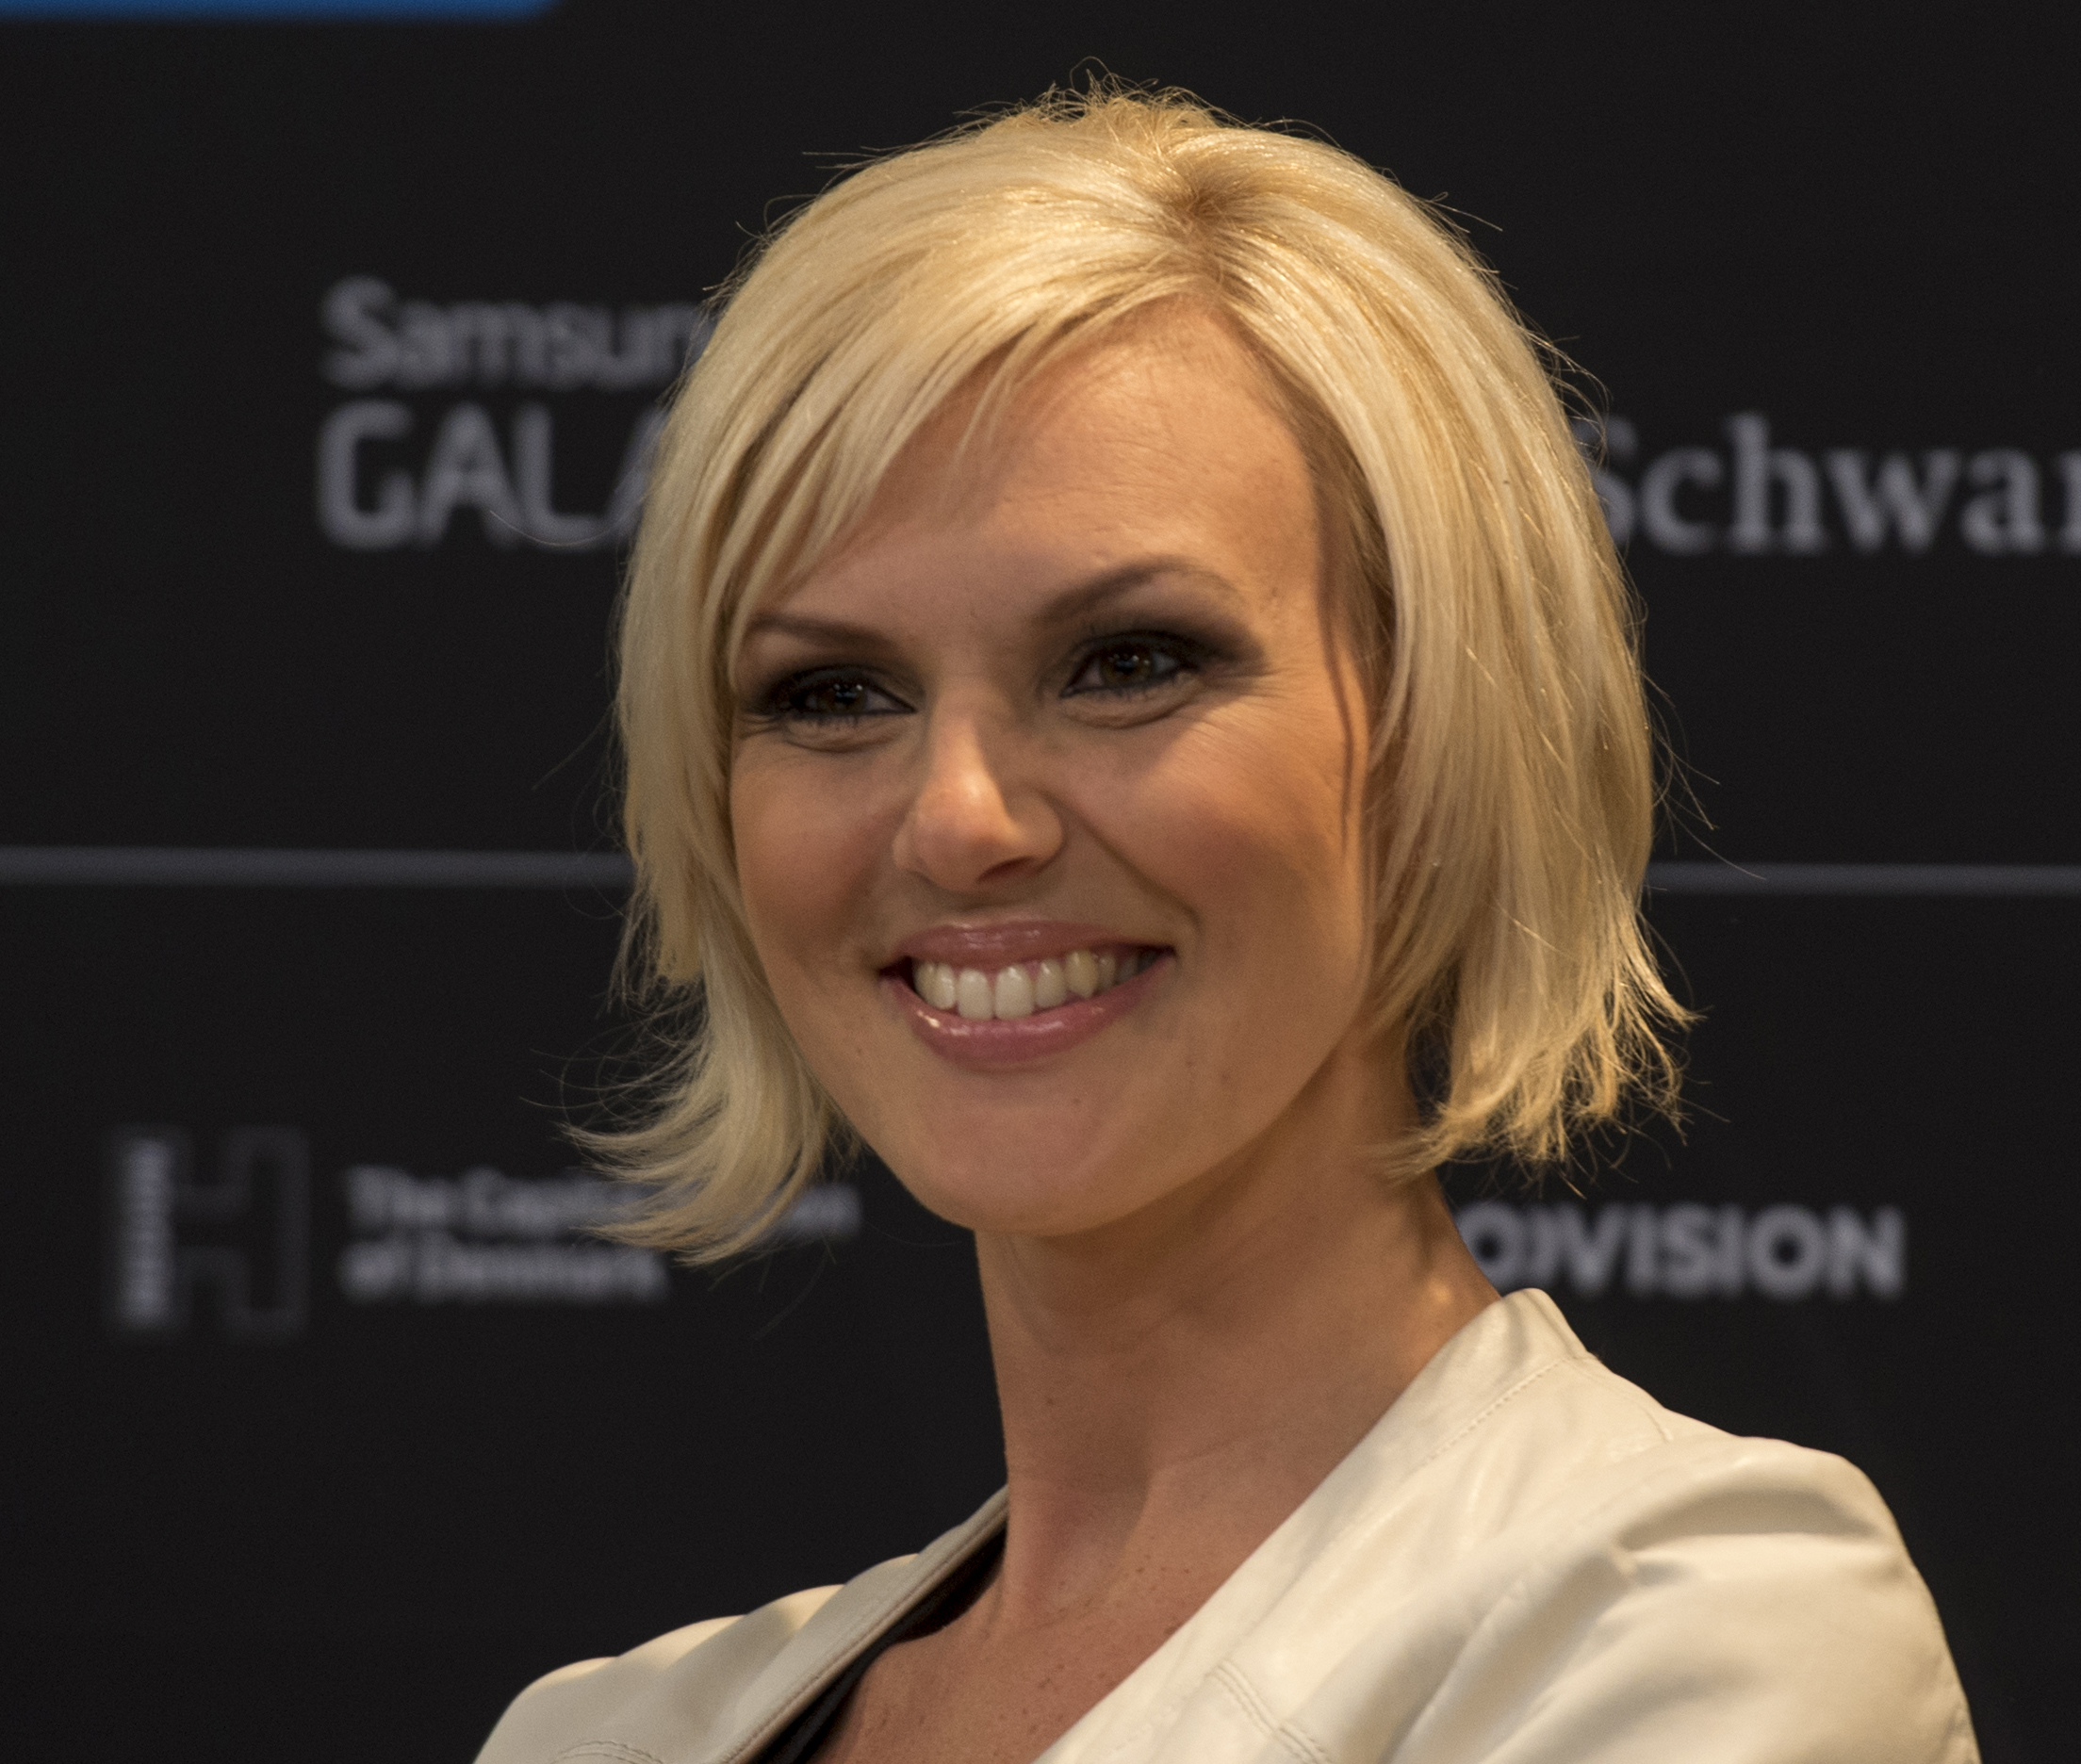 The 33-year old daughter of father (?) and mother(?) Sanna Nielsen in 2018 photo. Sanna Nielsen earned a  million dollar salary - leaving the net worth at 1 million in 2018